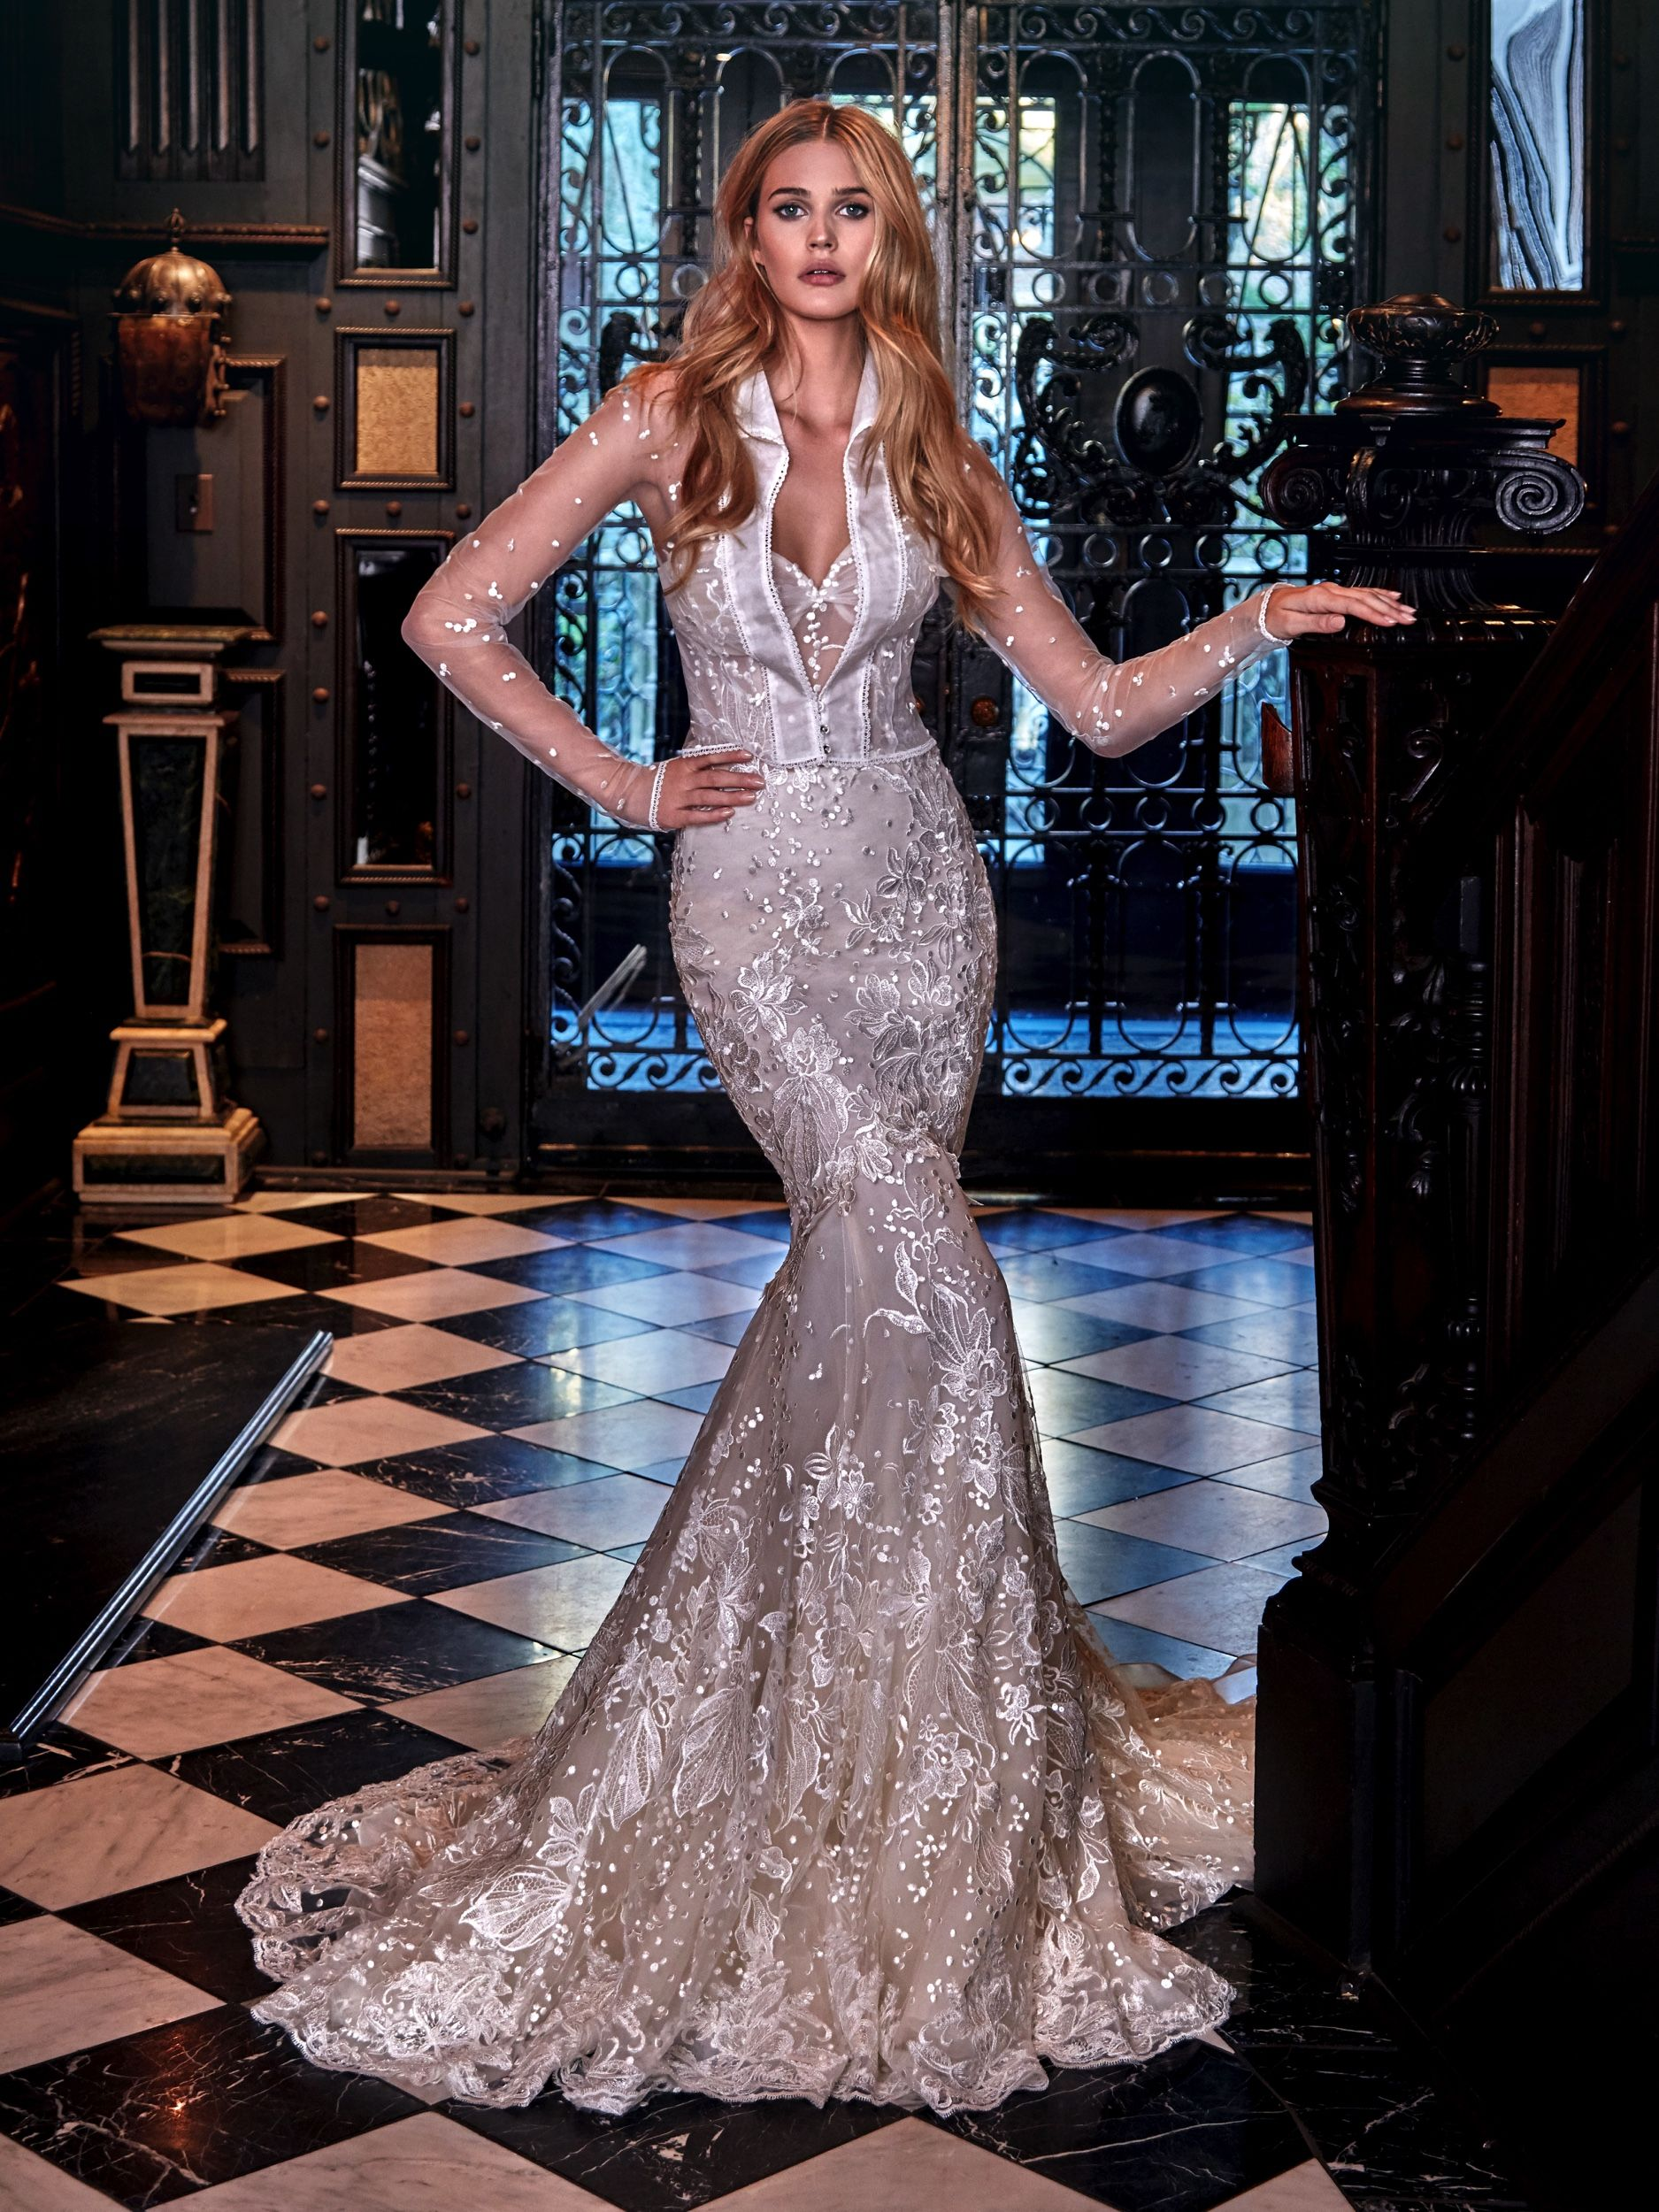 Vintage pearl bridal blog real brides news amp updates wedding - Galia Lahav Lidya Wedding Gown Extravagant And Unique As Its Own The Desire For A Galia Lahavbride